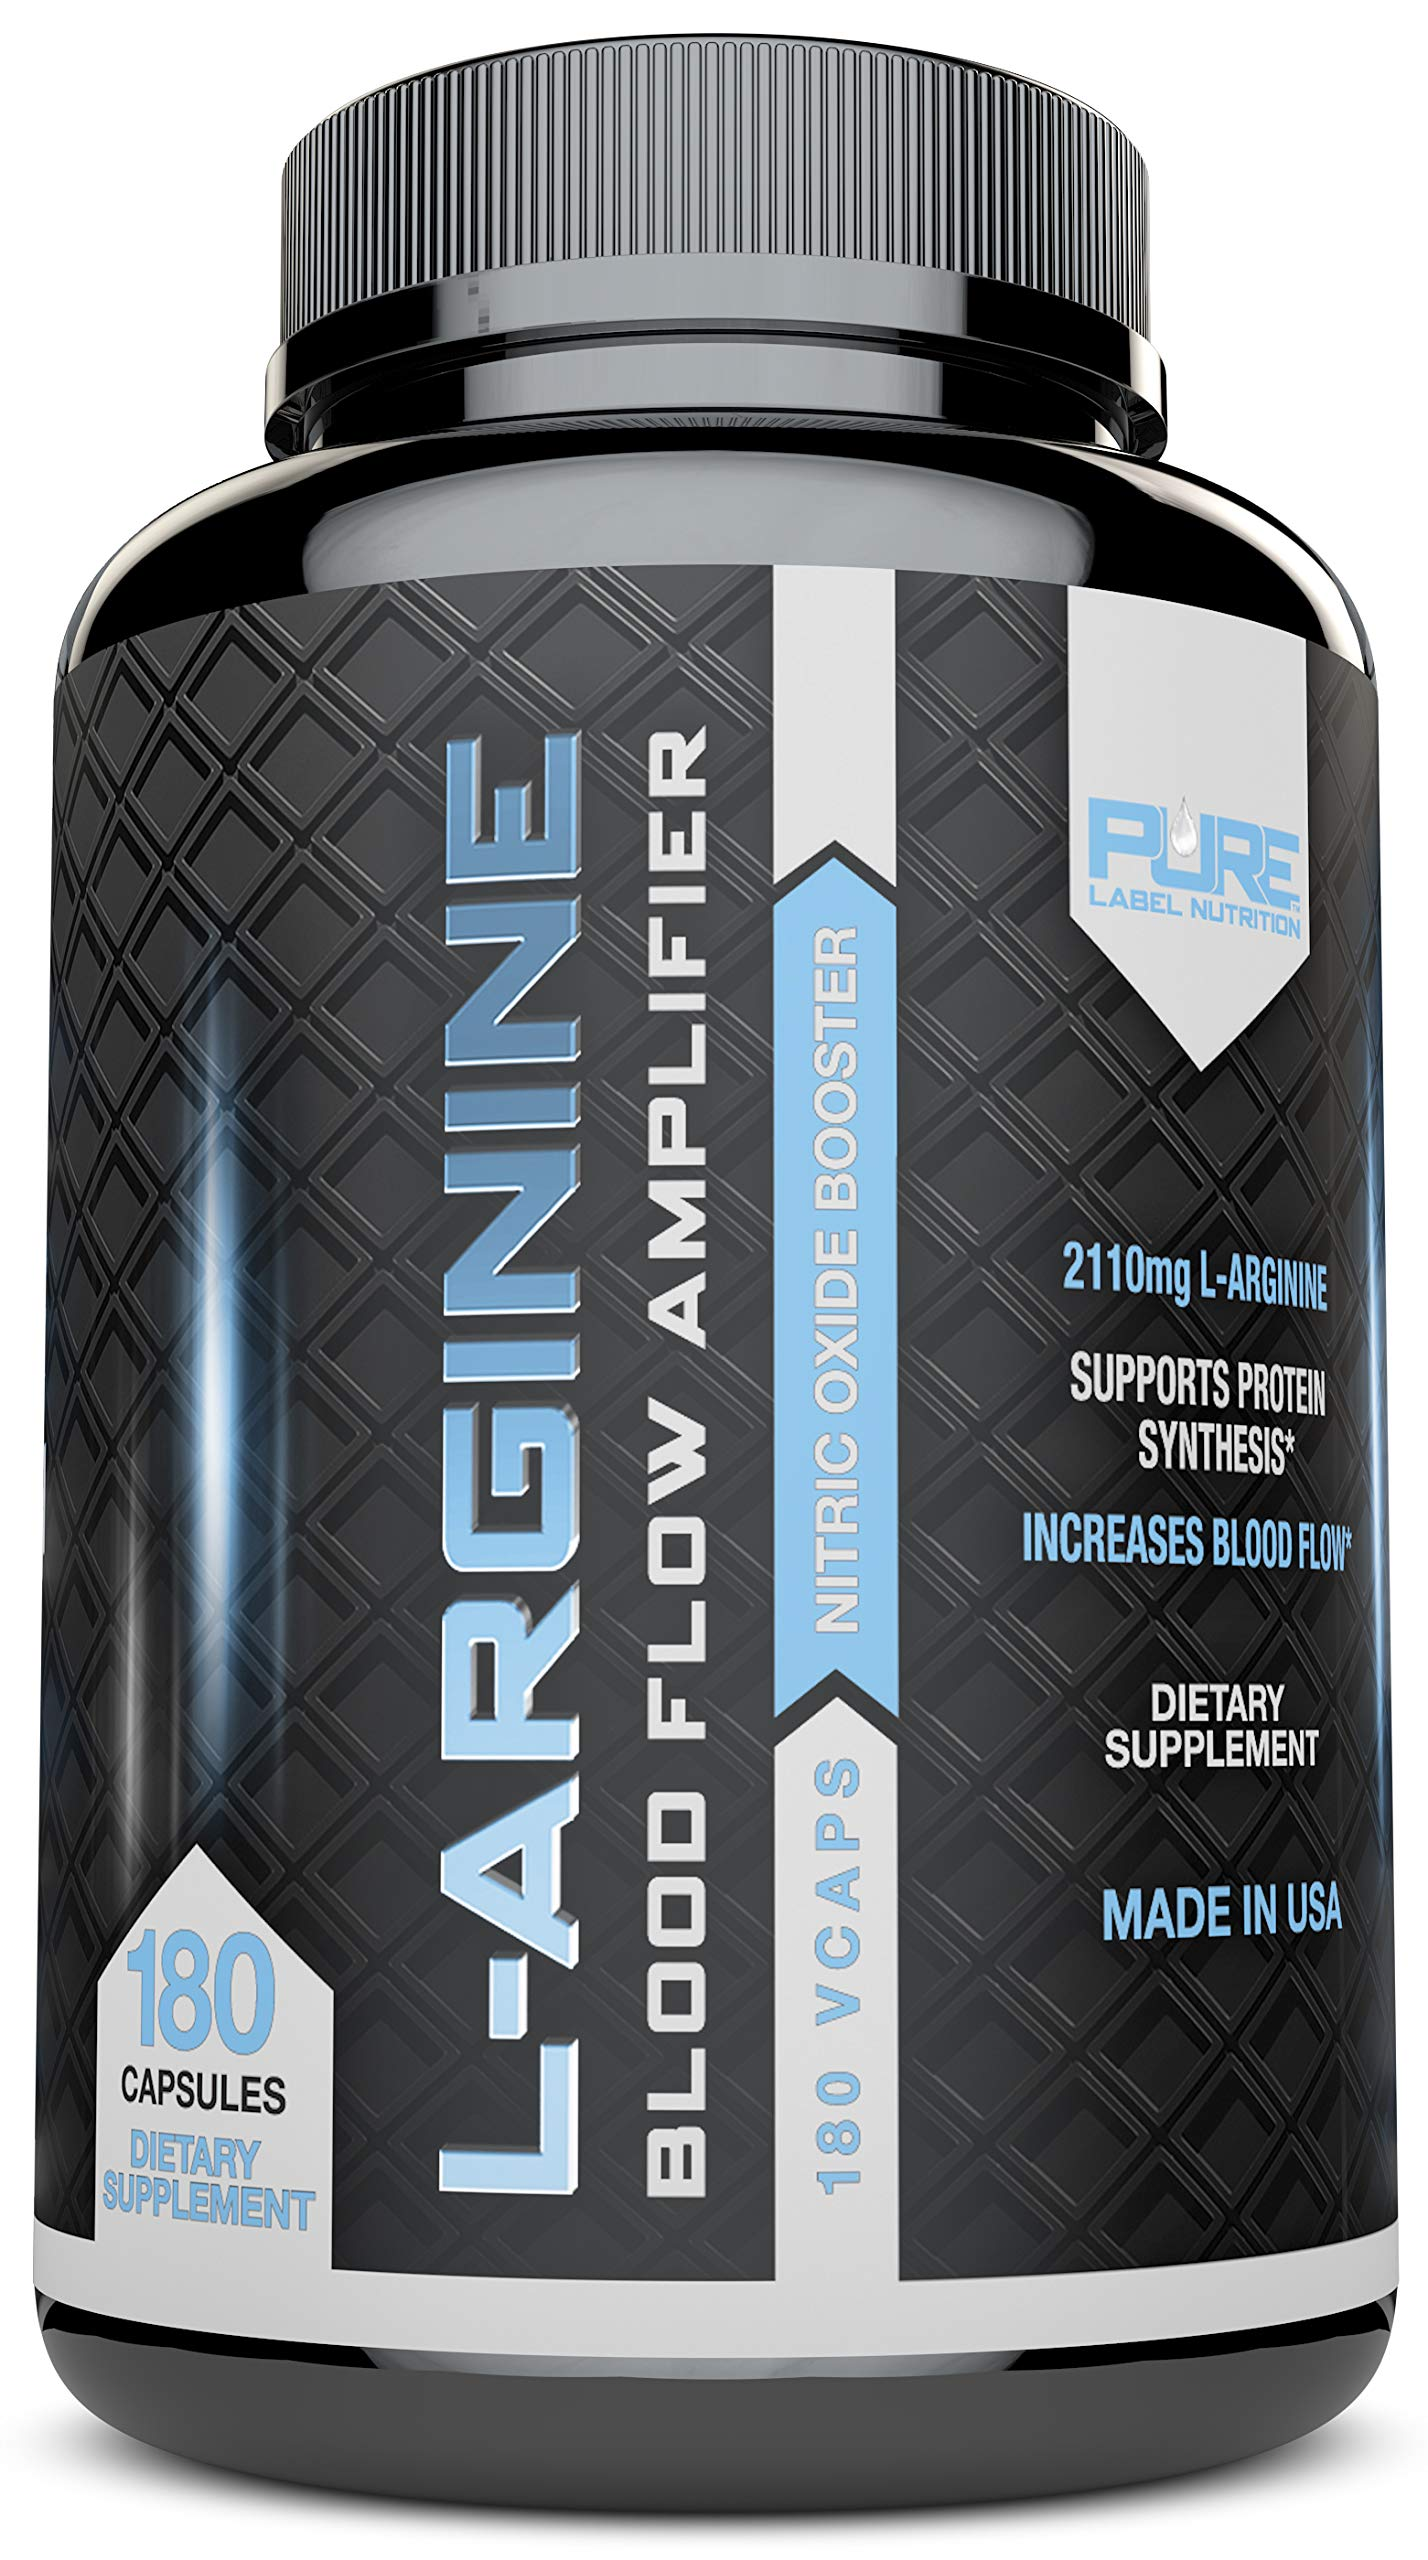 L-Arginine Pure-A 2110mg (180 Capsules) L Arginine Nitric Oxide Booster, Build Muscle Increase Strength - Best Purest Arginine + Top Rated - Most Effective Dose - Made in USA by Pure Label Nutrition